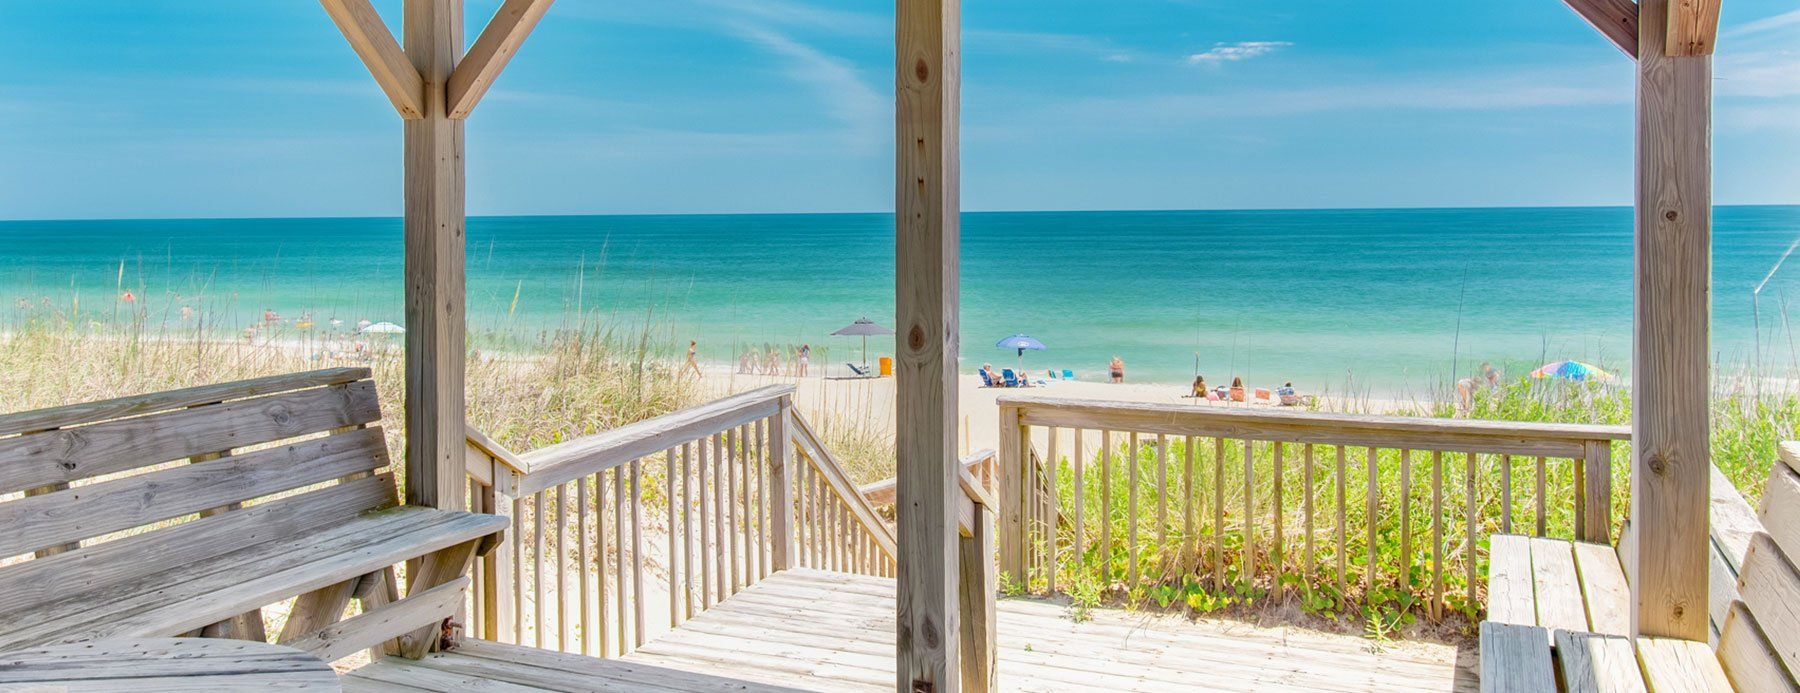 beach rentals outer banks 2020